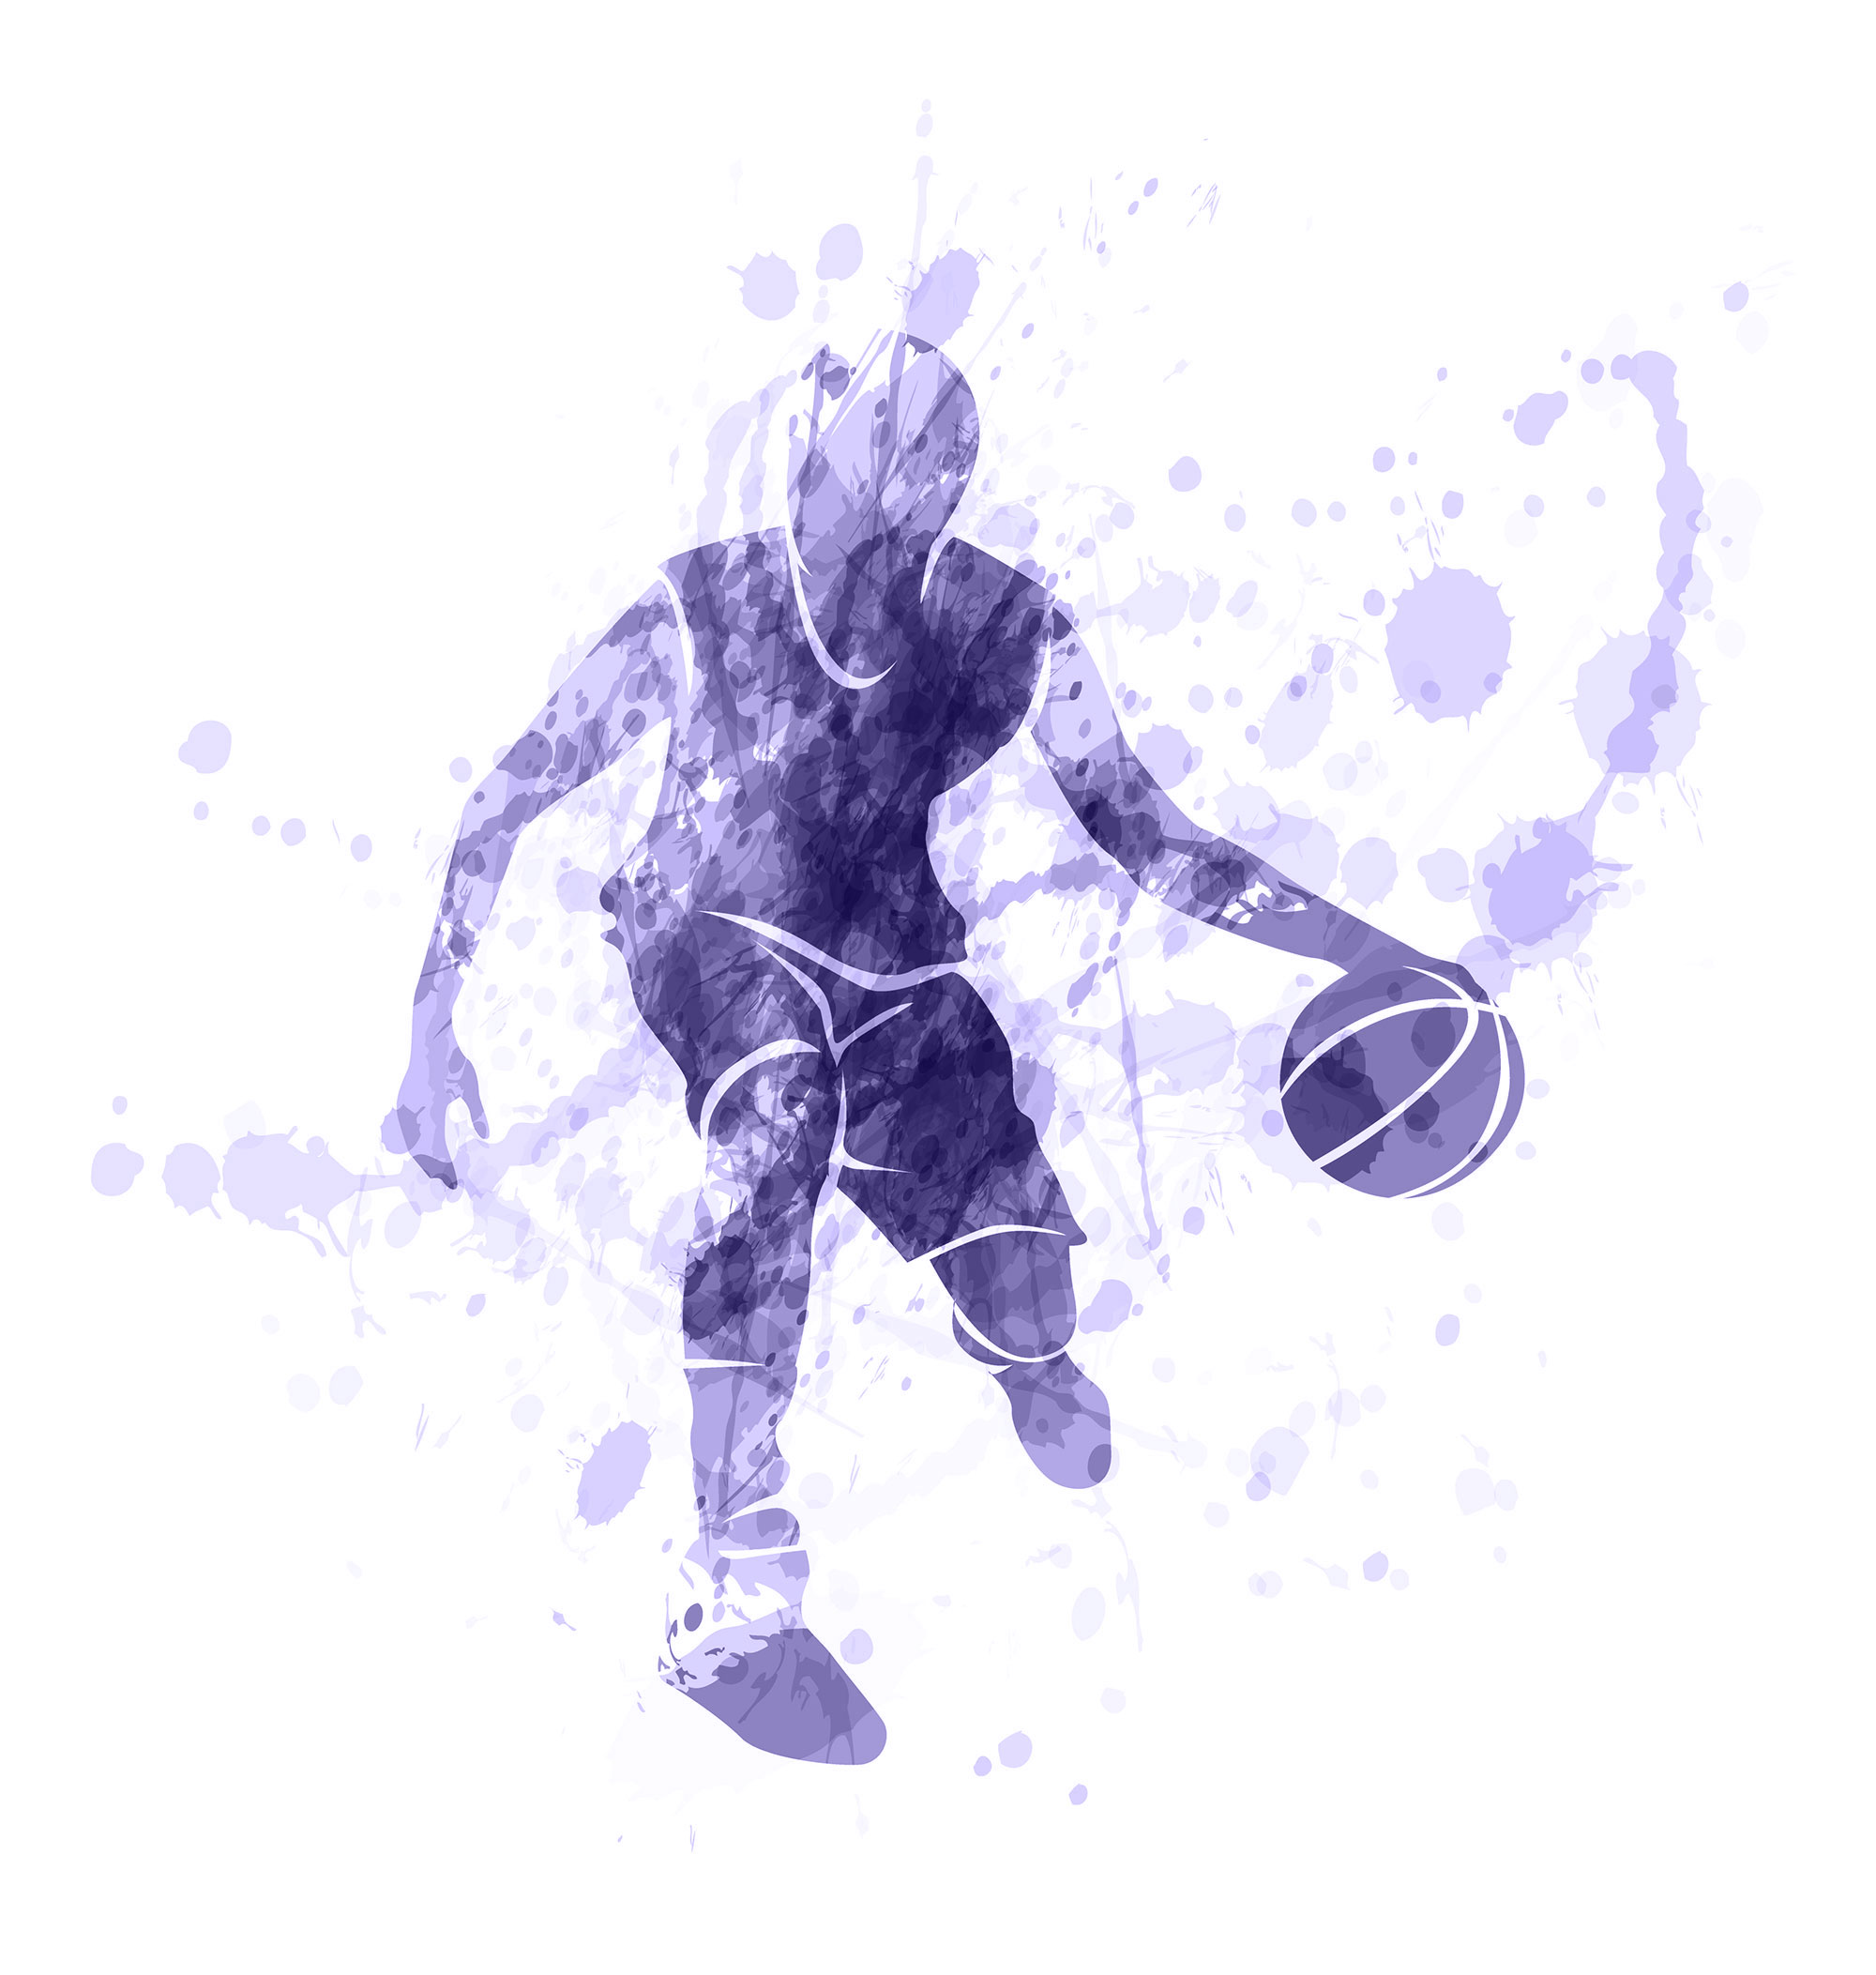 Colored-vector-silhouette-of-basketball-player-with-ball